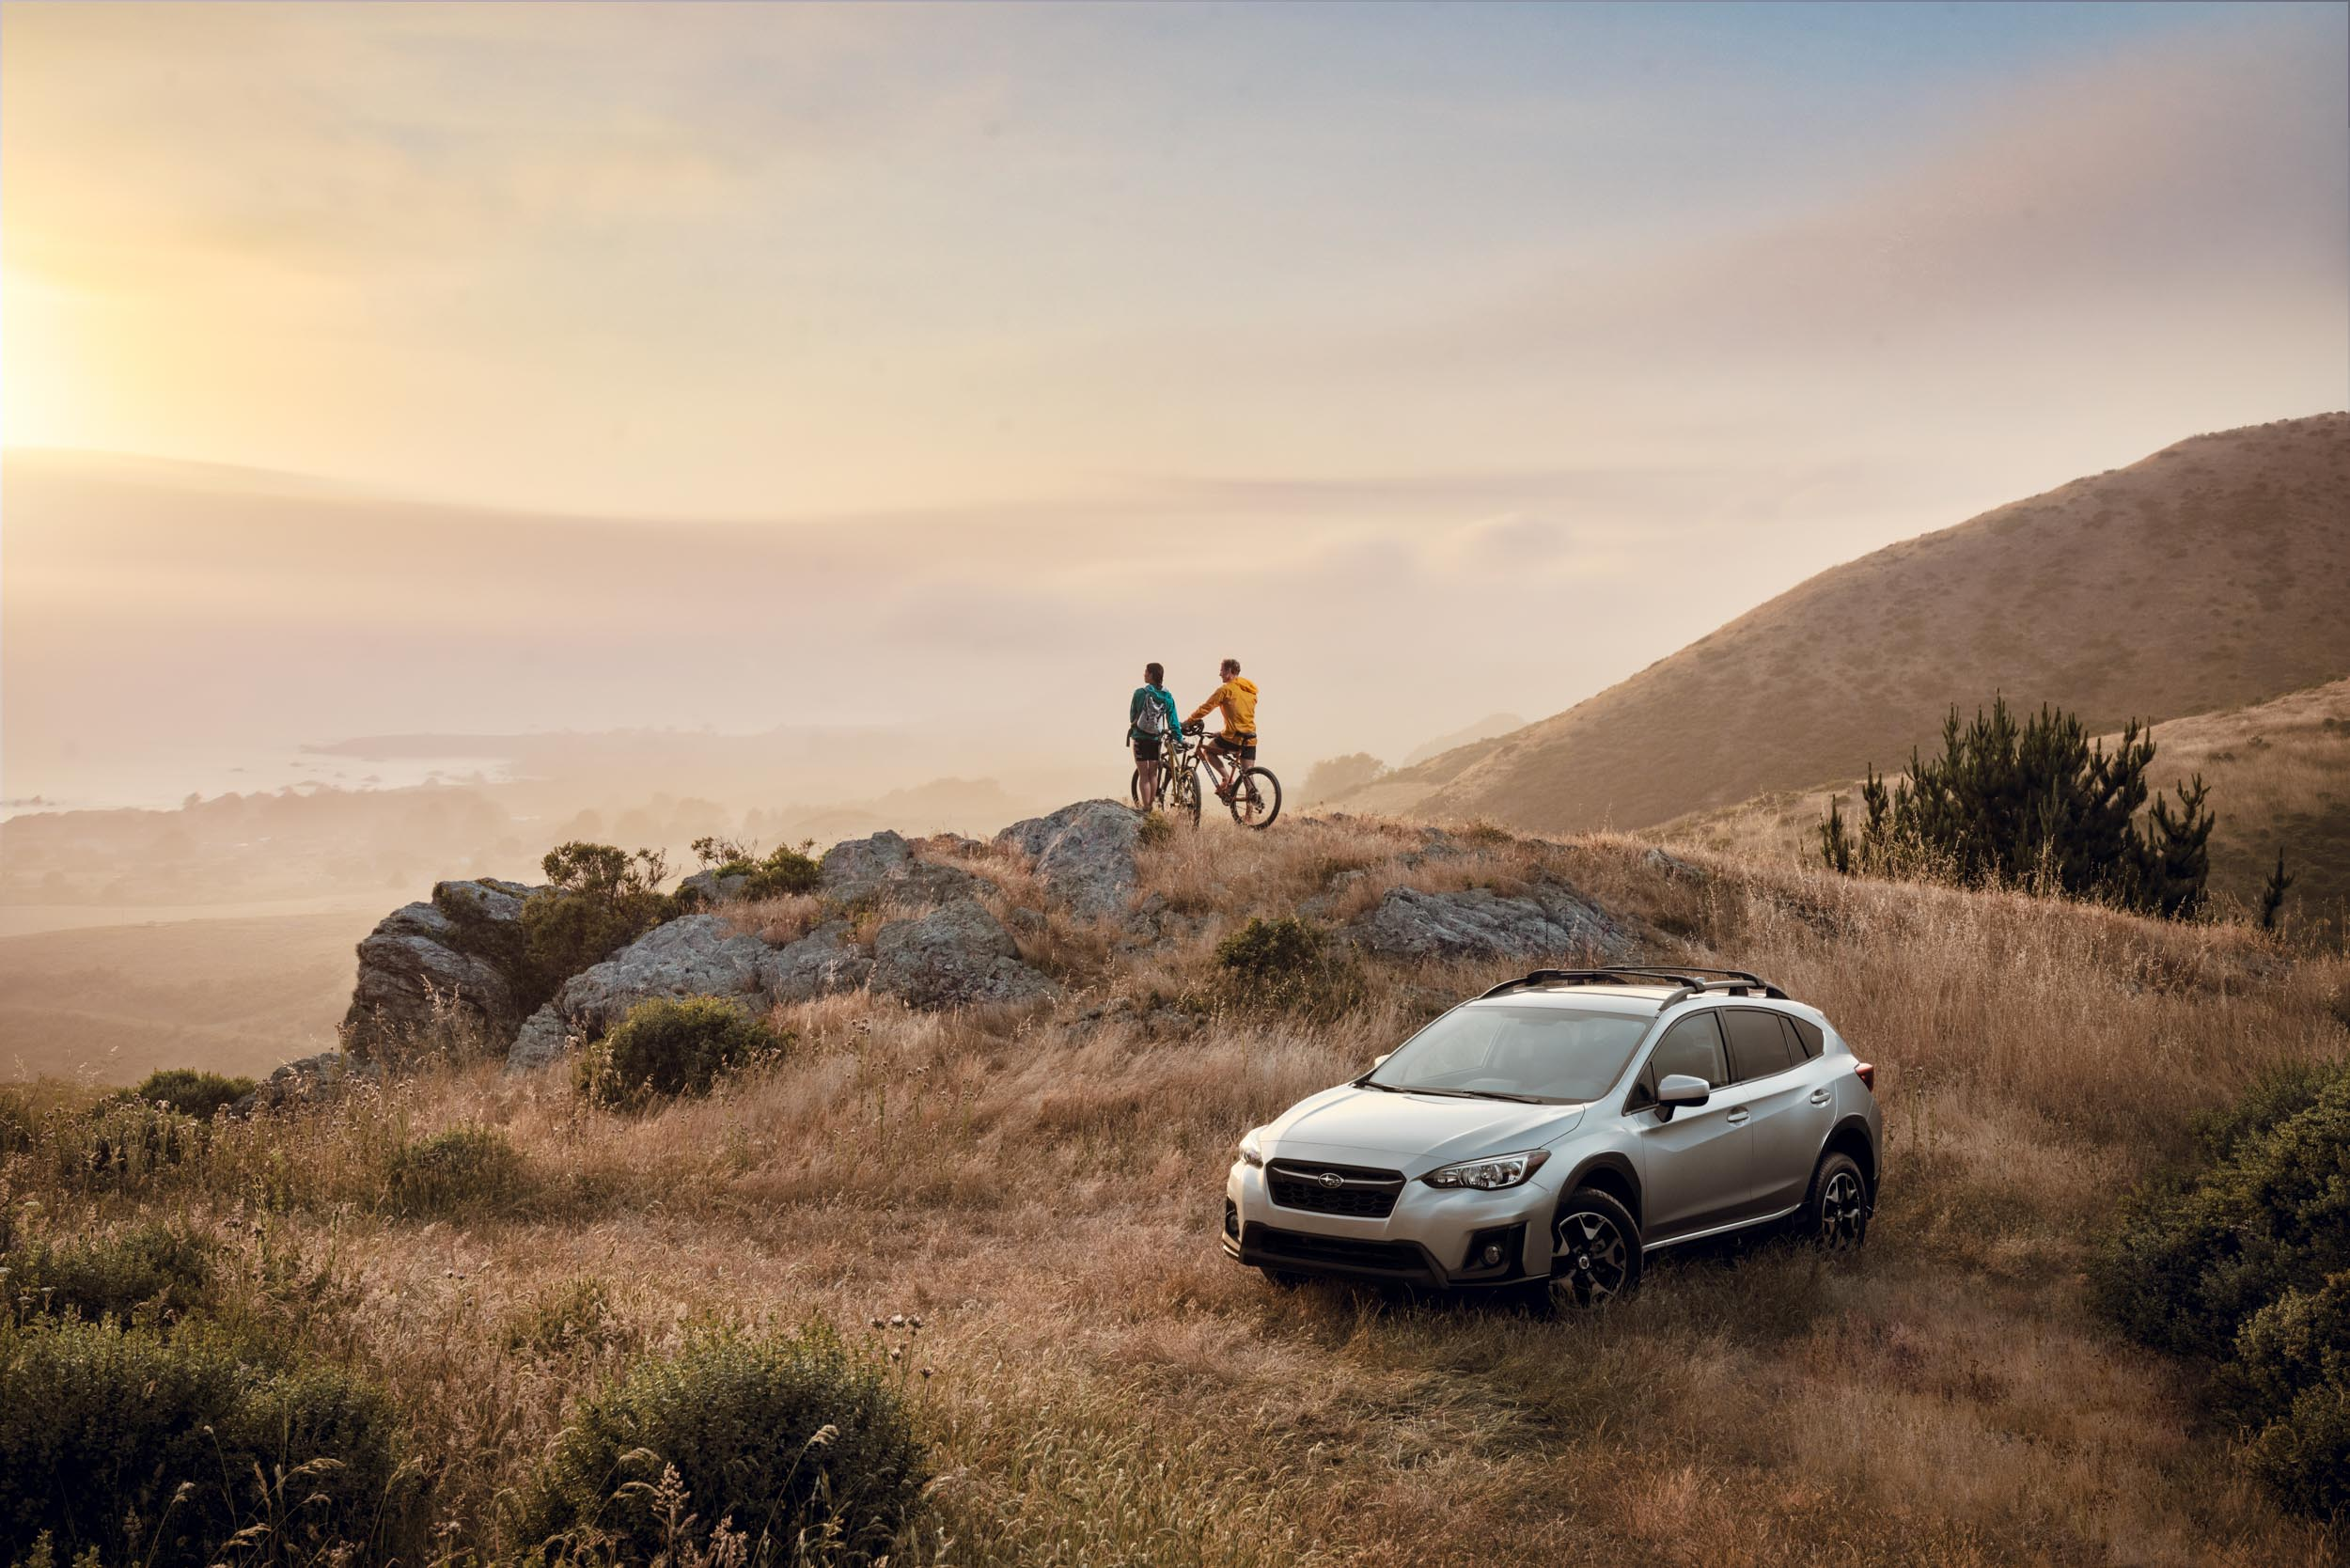 Two mountain bikers watch the sunset near their Subaru Crosstrek